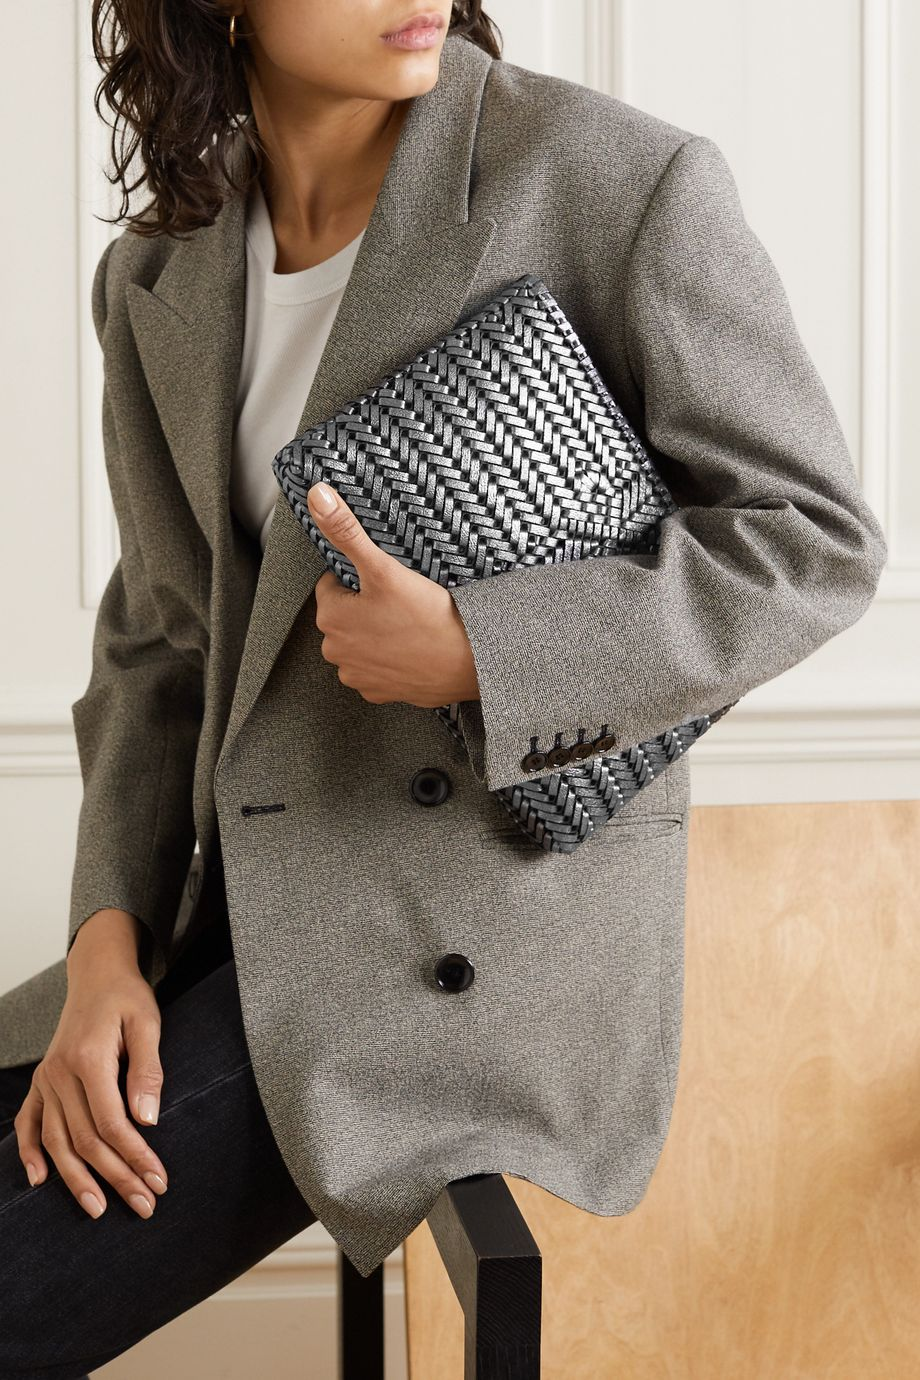 Anya Hindmarch The Neeson large woven metallic leather clutch